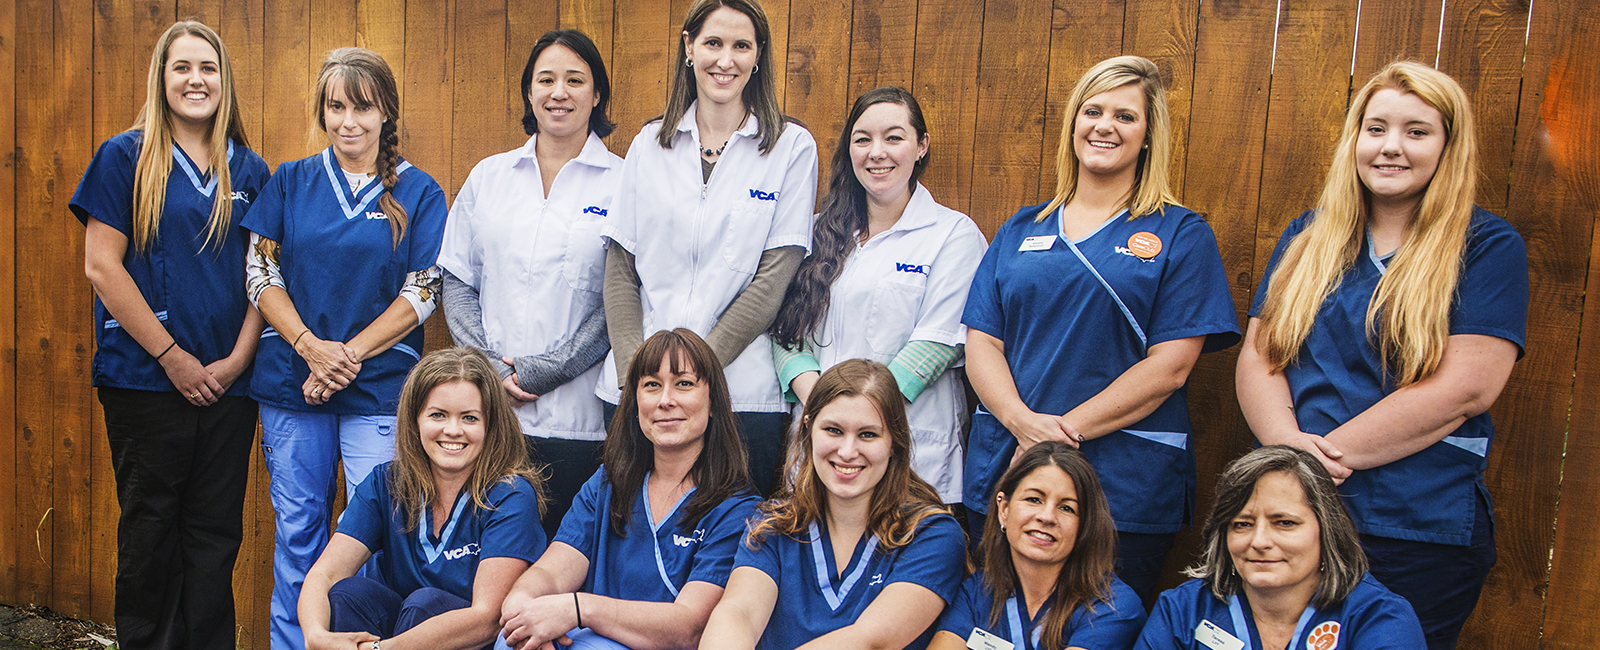 Homepage Team Picture of VCA Lacey Animal Hospital